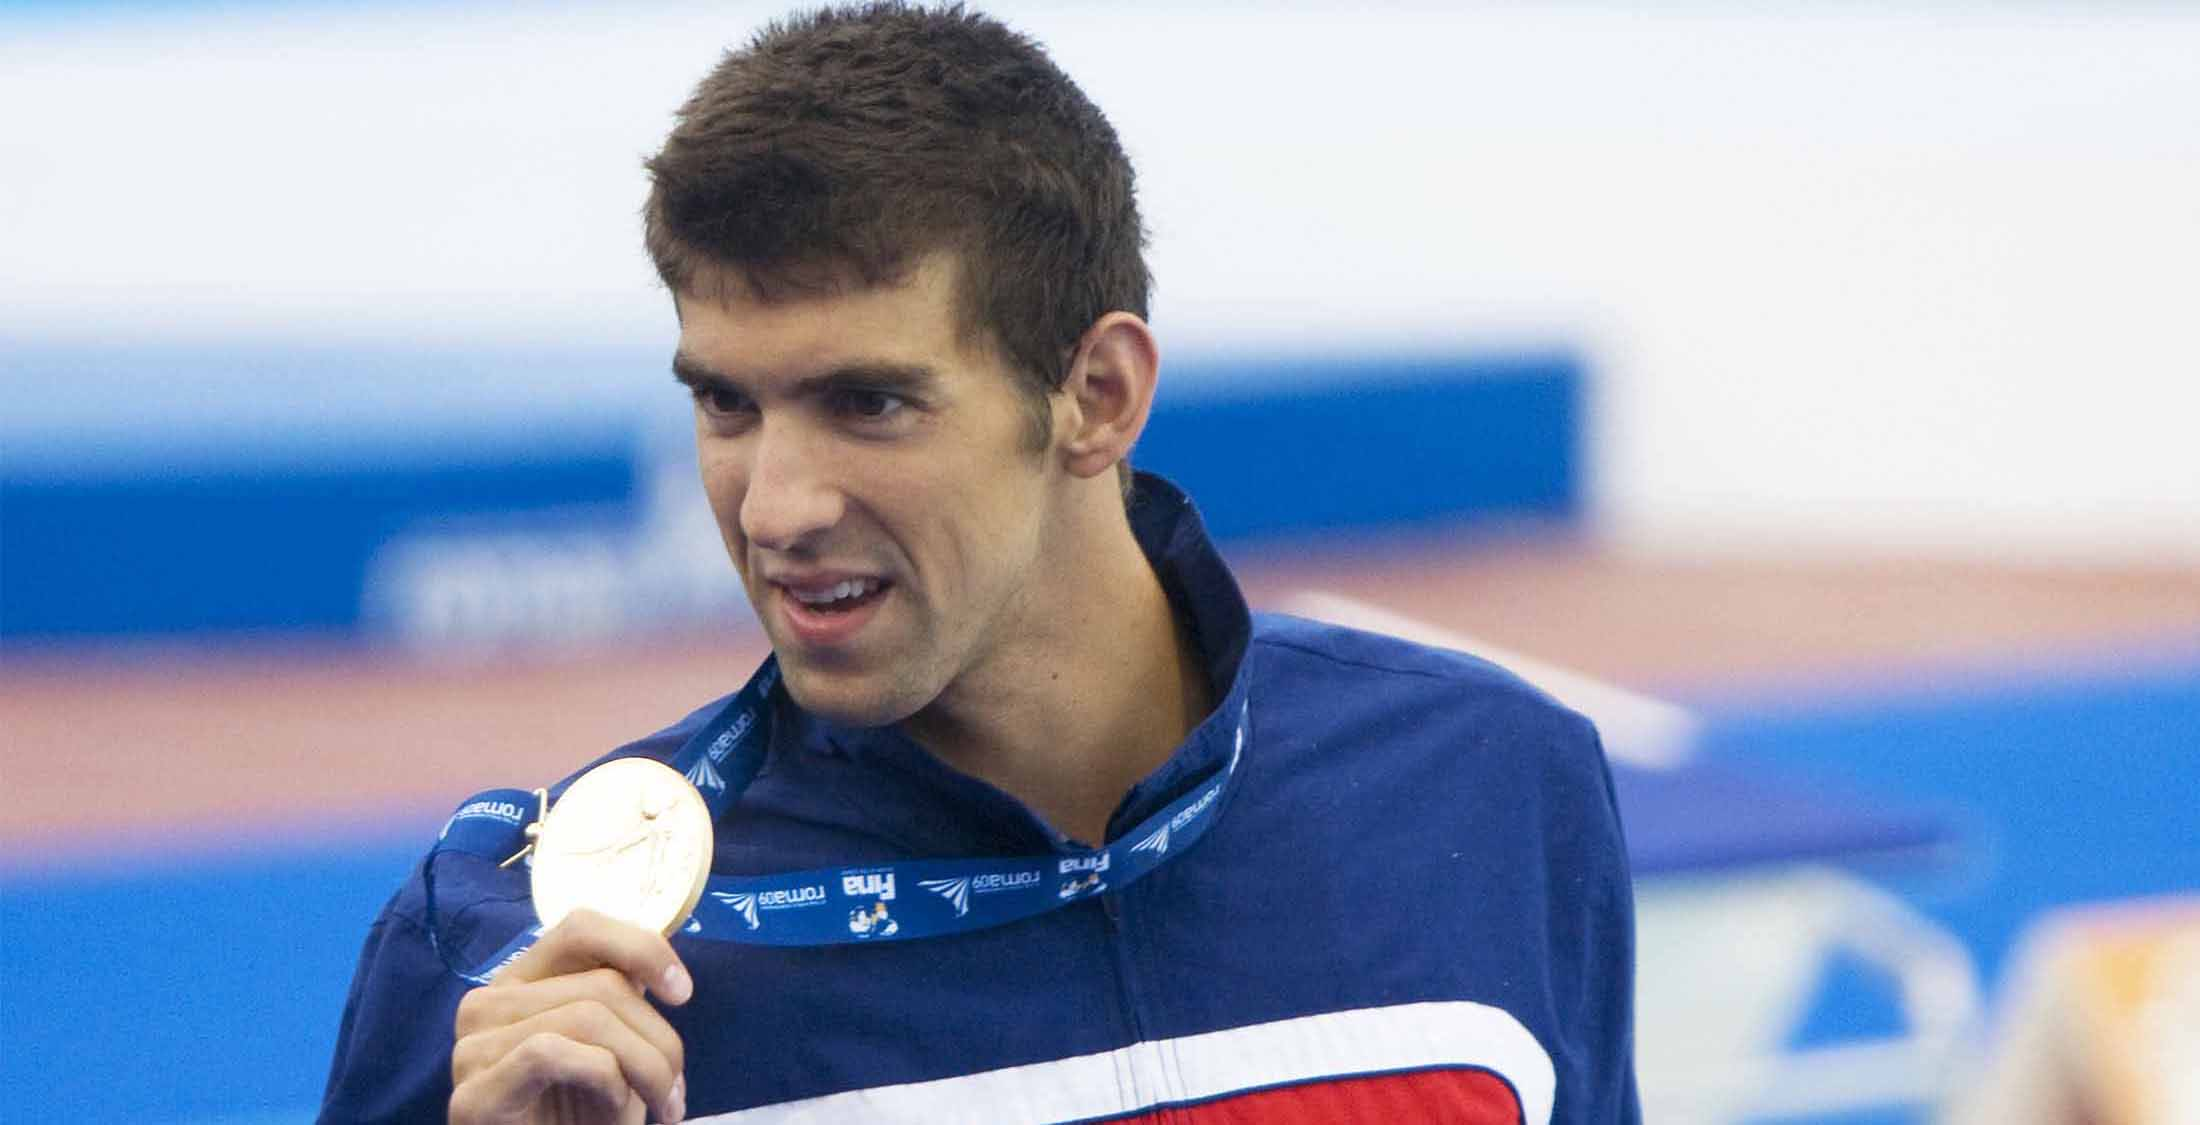 michael phelps earnings